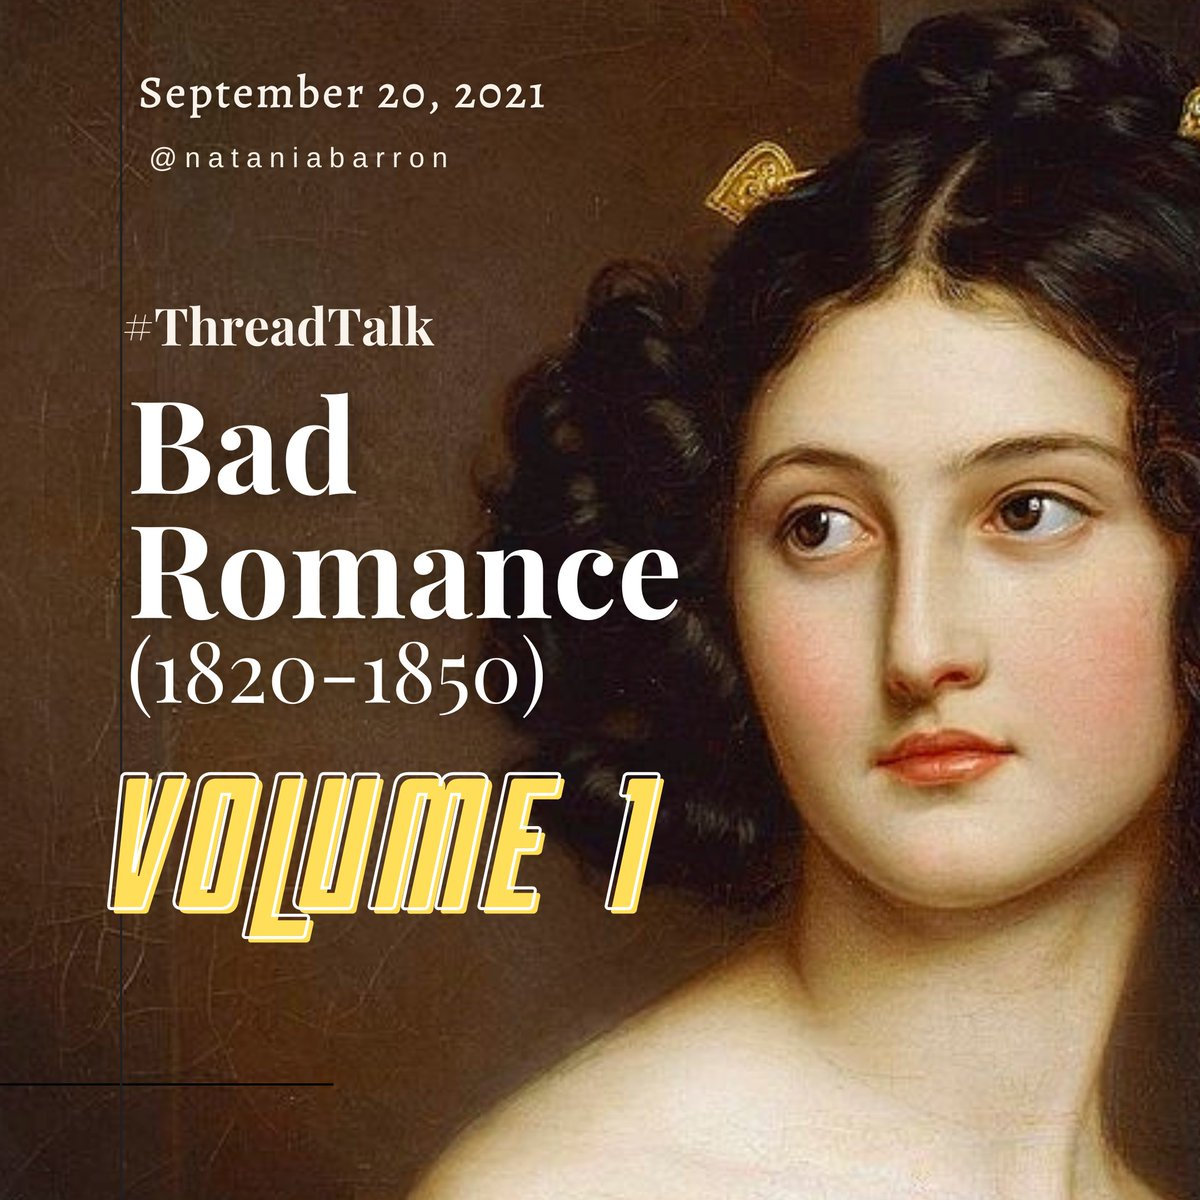 September 20, 2021 - @nataniabarron, #threadtalk, Bad Romance (1820-1850) - Volume 1. A dark-haired woman with her hair parted down the middle, with Classical features, looking off to the left. She has ringlets and a braided bun.